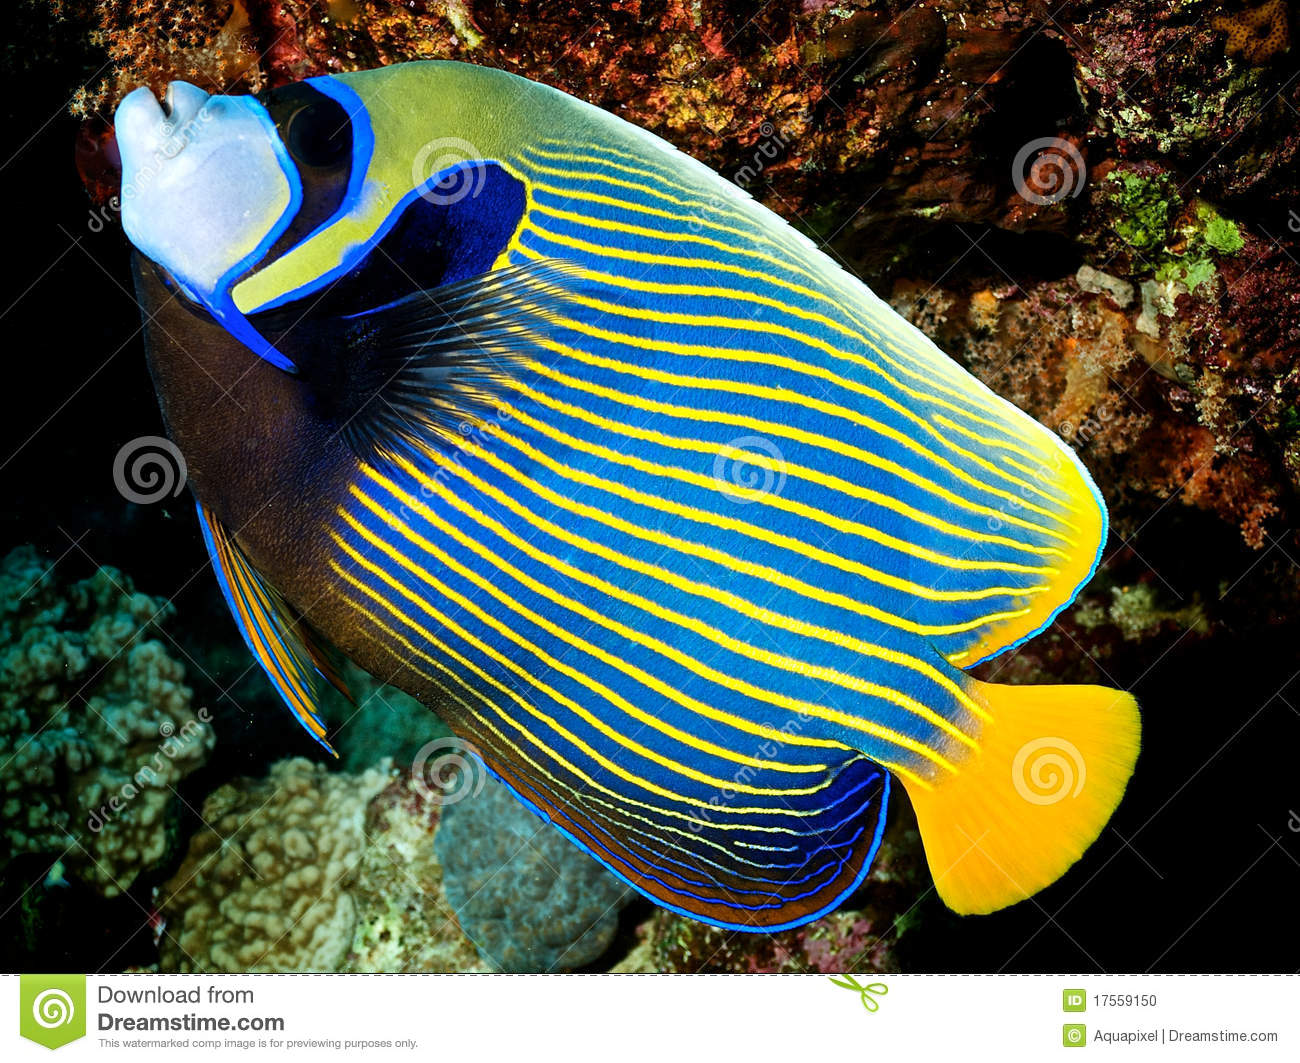 Imperator de pomacanthus poisson imperator d 39 ange photo for Achat poisson rouge nice